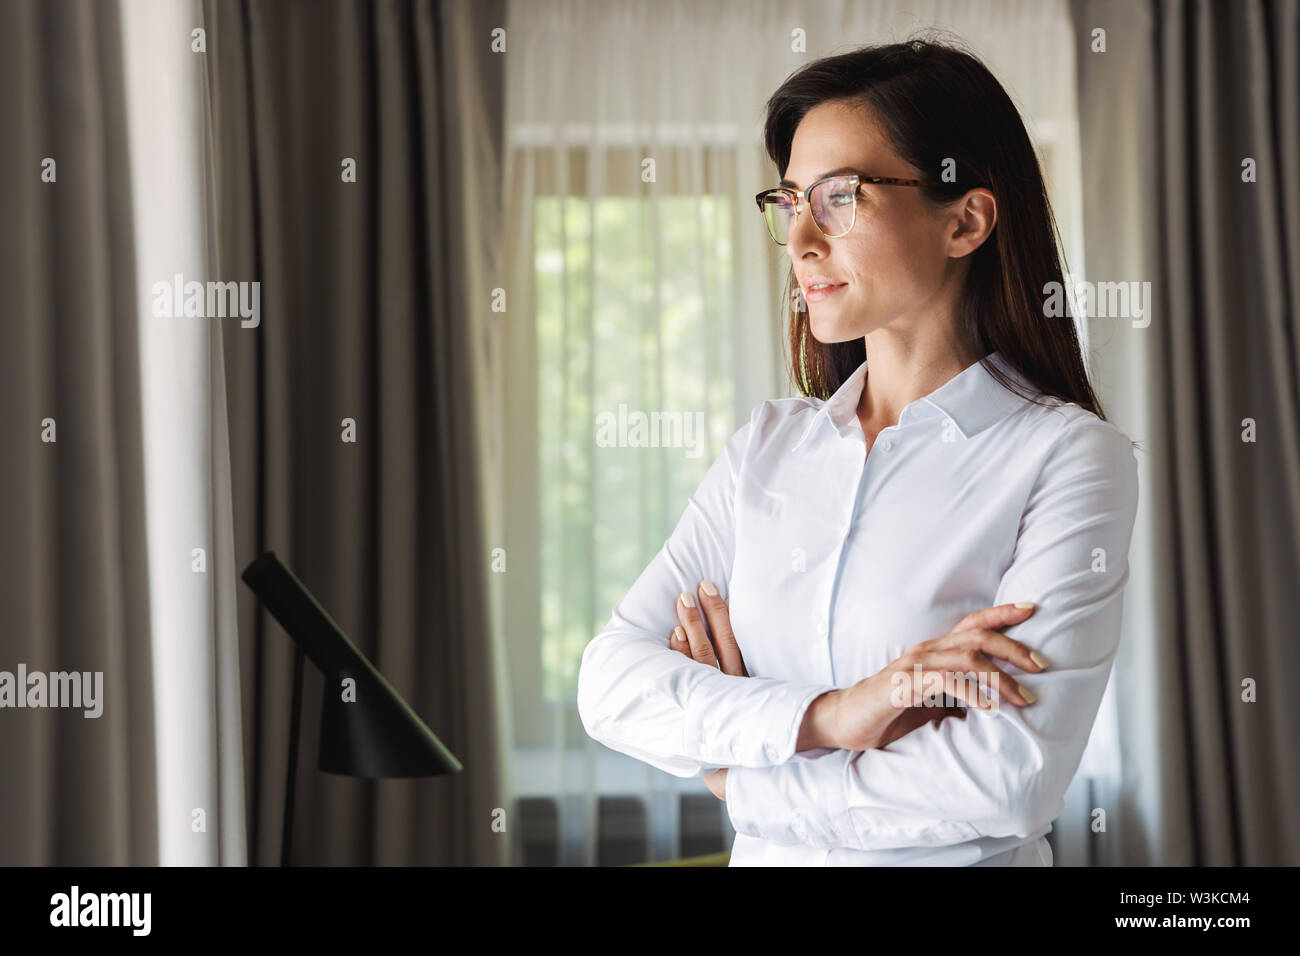 Image of an amazing beautiful young business woman in formal wear clothes indoors at home posing. - Stock Image